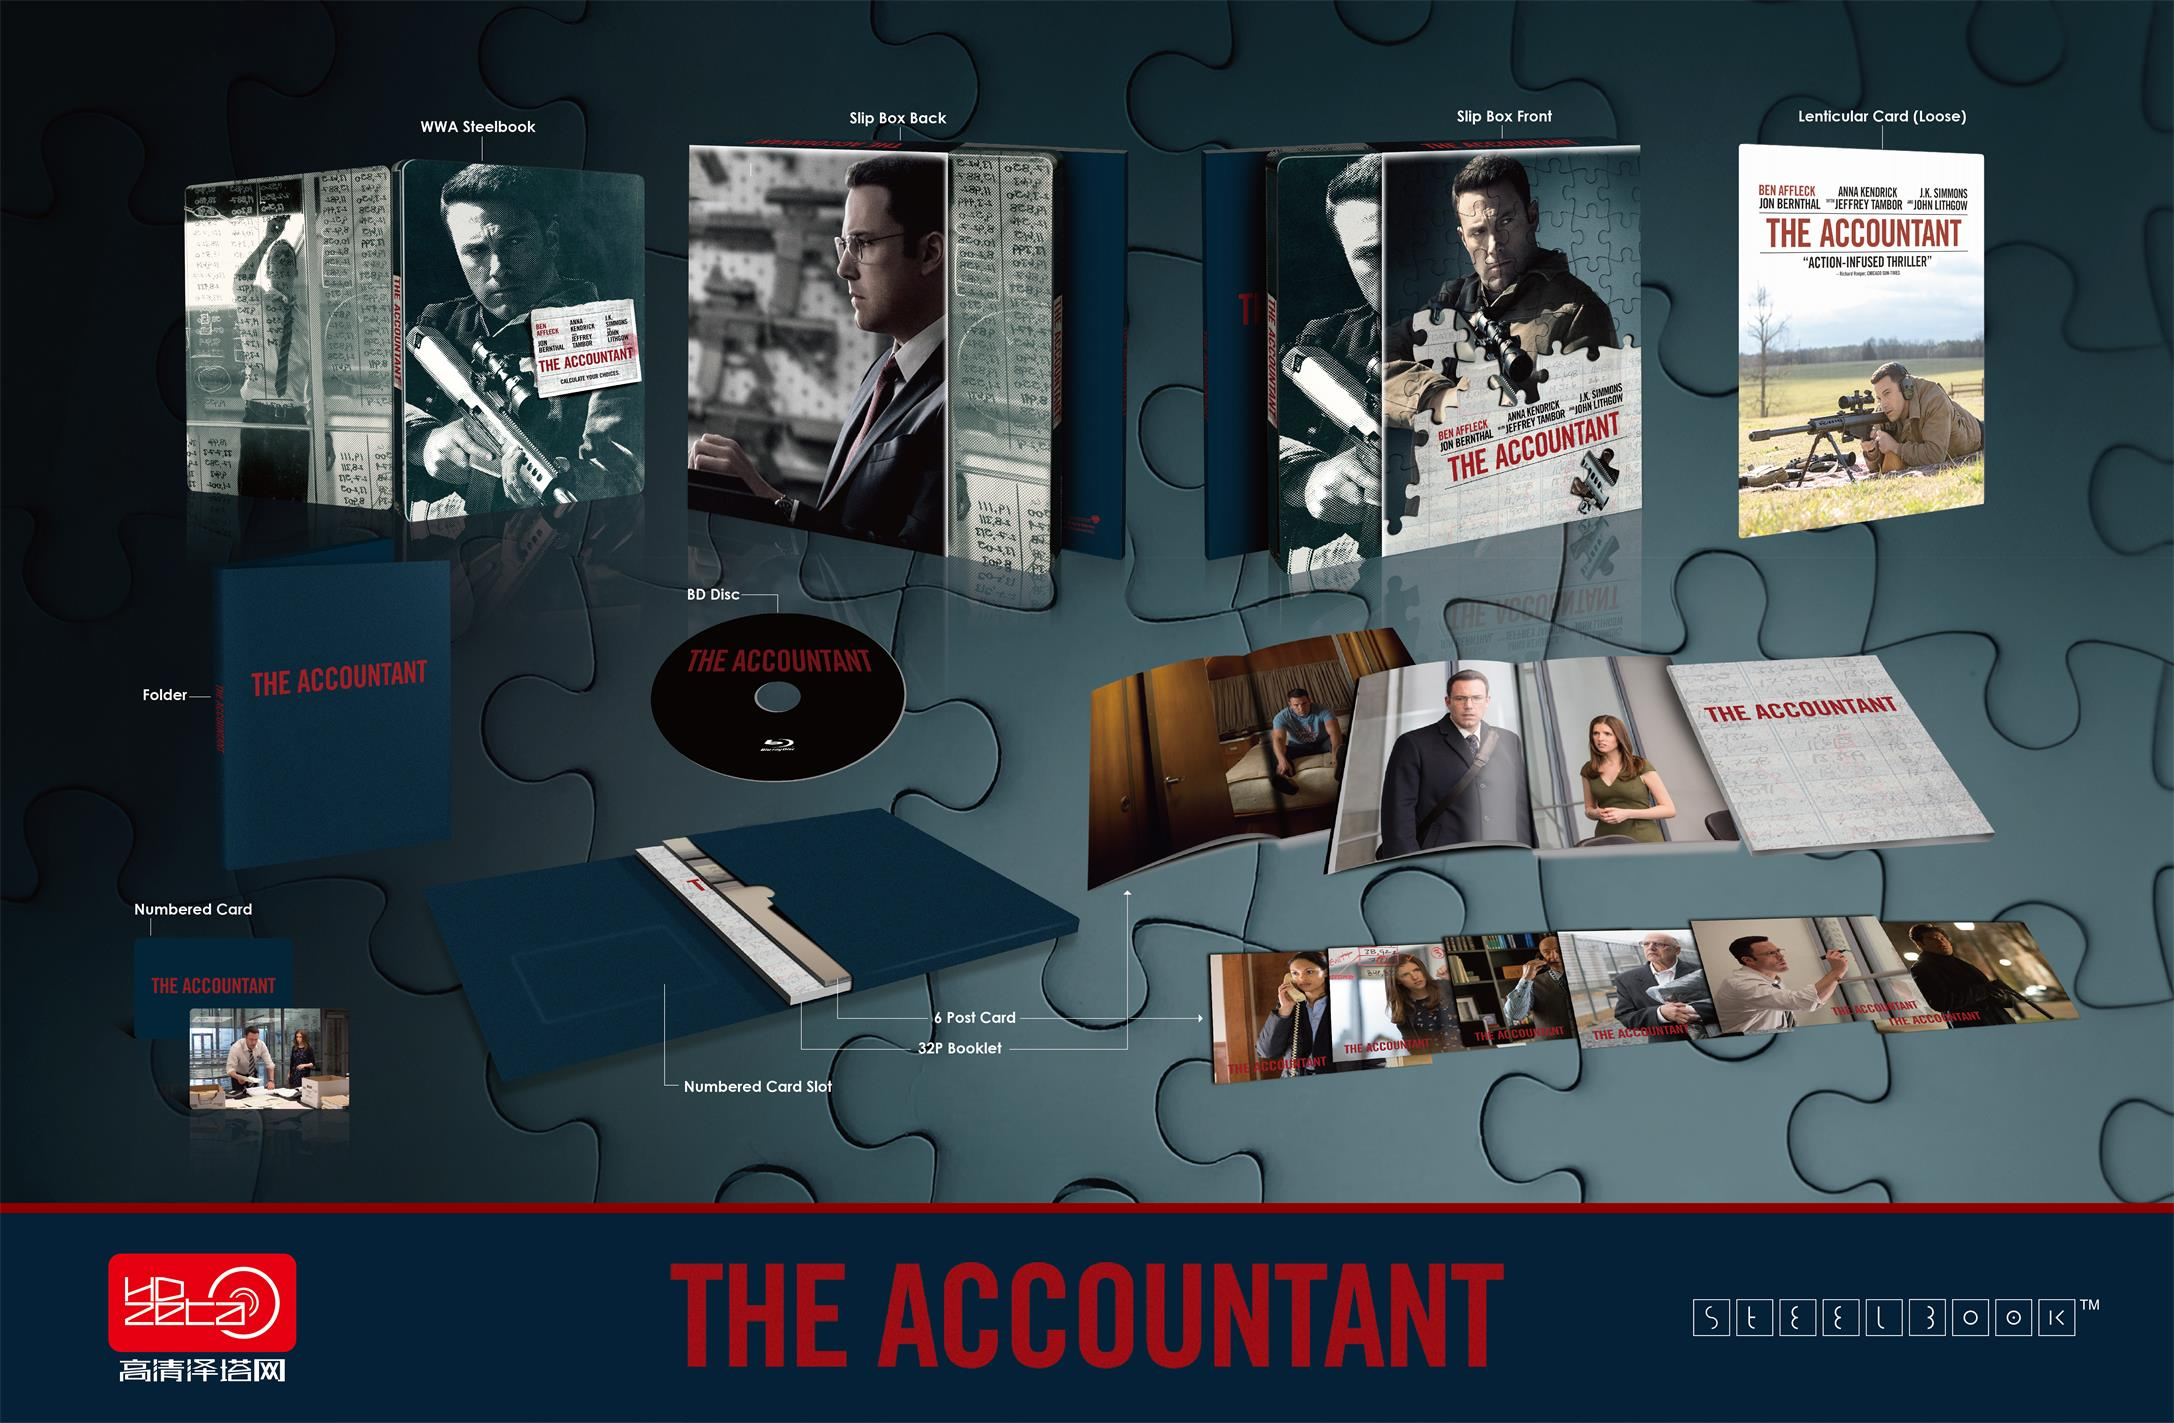 The Accountant SteelBook HDzeta Special Edition Silver Label スチールブック